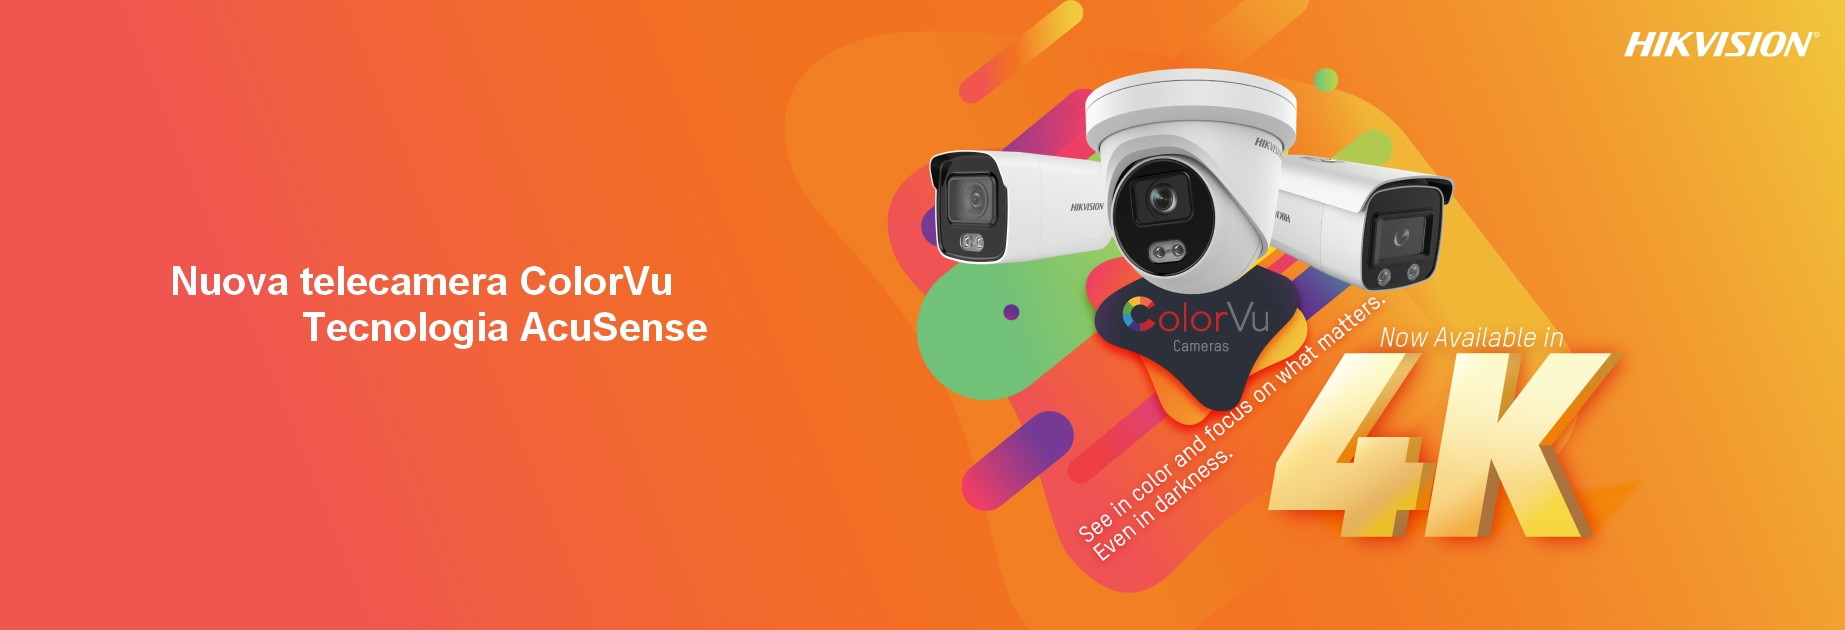 HIKVISION Nuove telecamere ColorVu